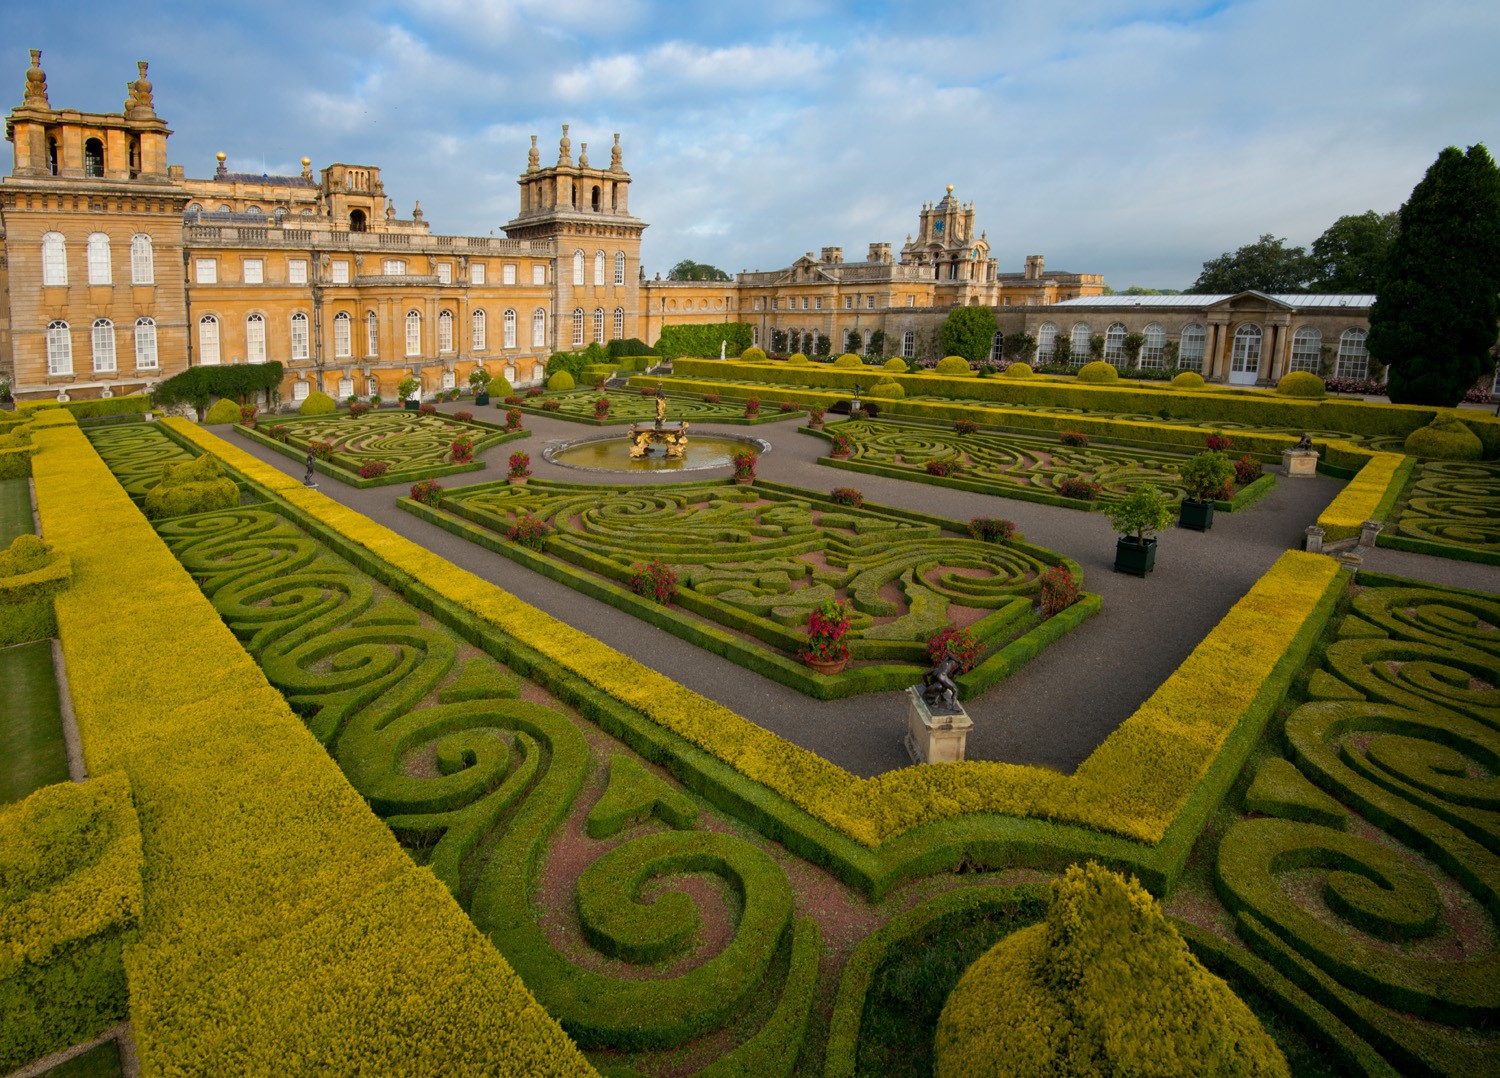 Italian Garden at Blenheim Palace.